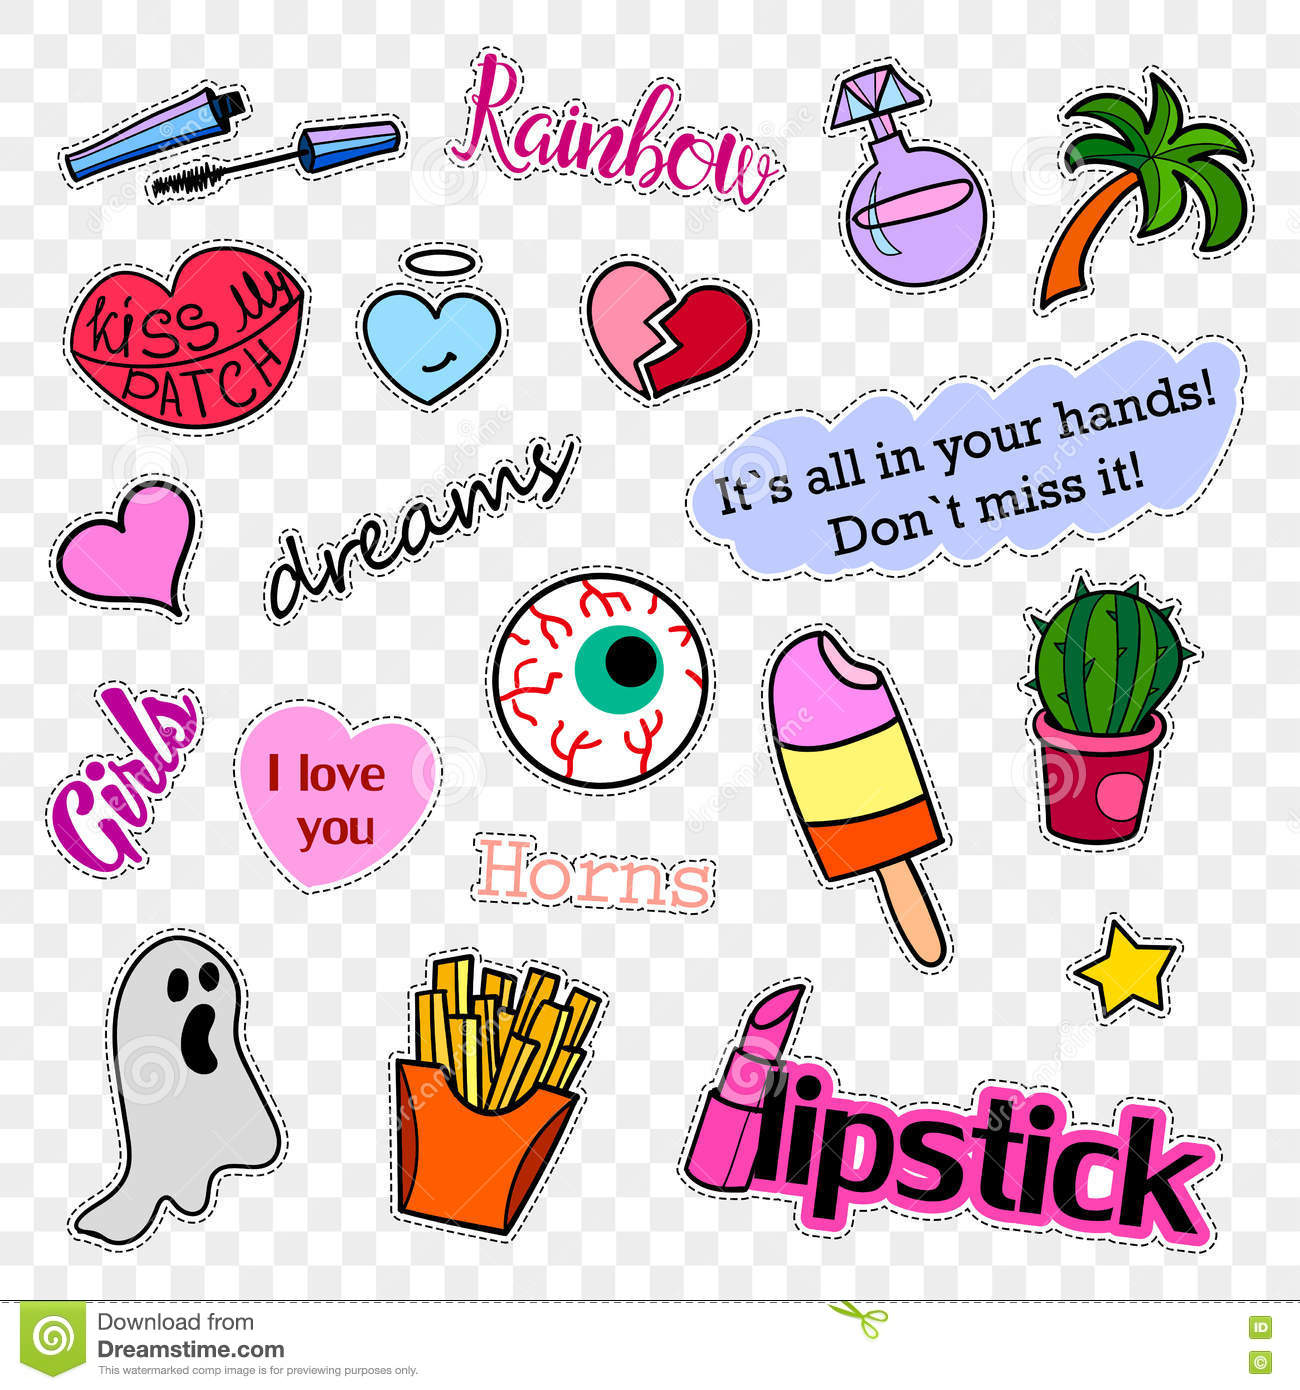 Fashion patch badges. Pop art set. Stickers, pins, patches and handwritten notes collection in cartoon 80s-90s comic